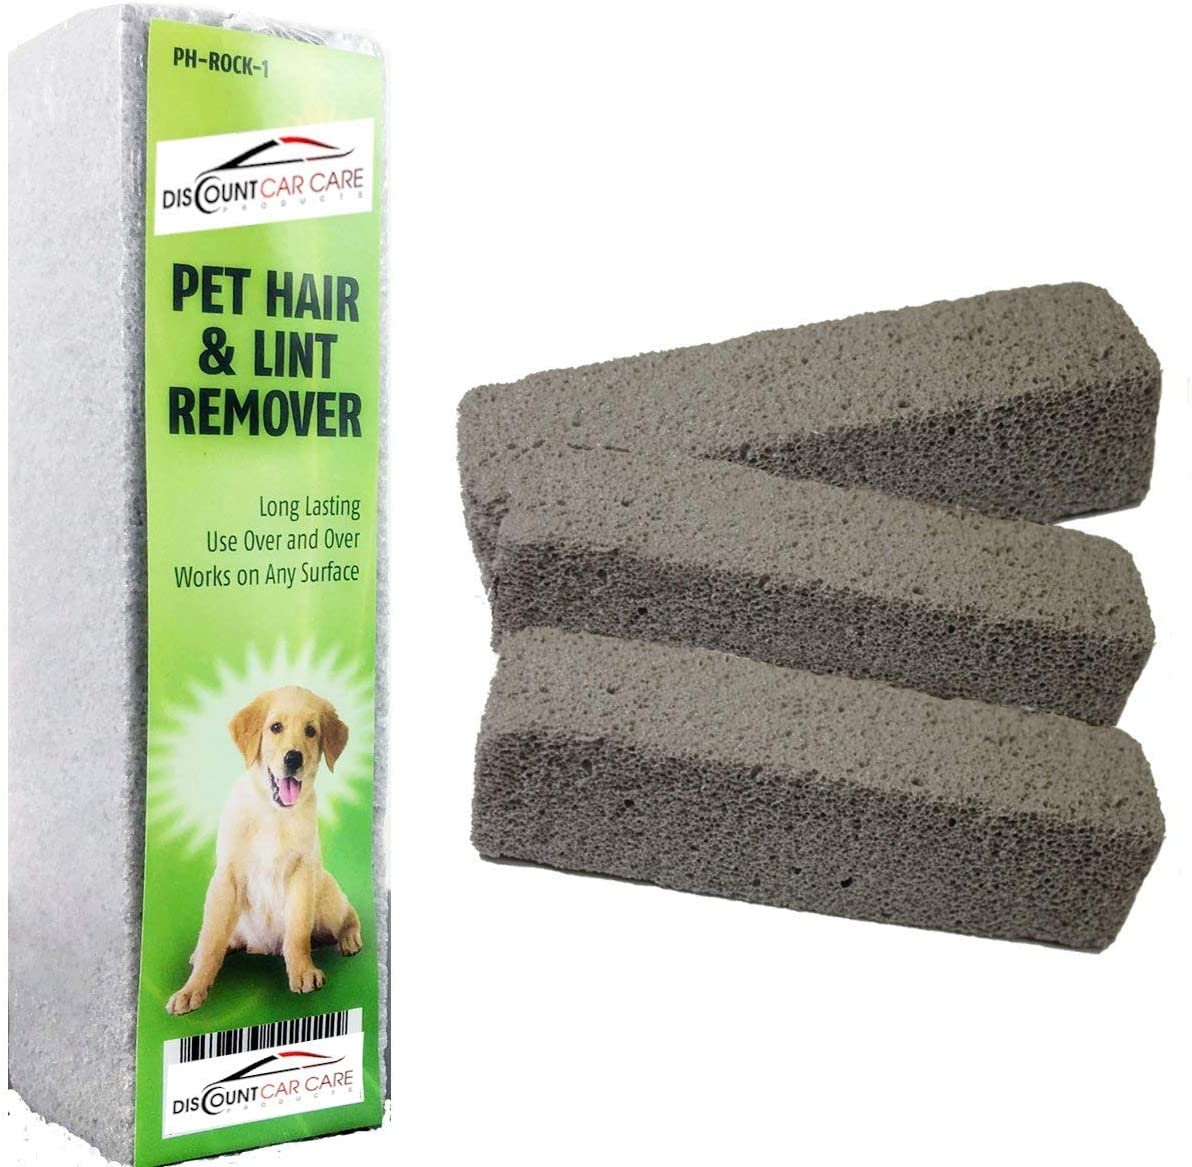 Pet Hair Remover Rock Removes Dog Hair or Cat Hair Quick, Easy & Efficient From Carpet & Upholstery (3 Pack)